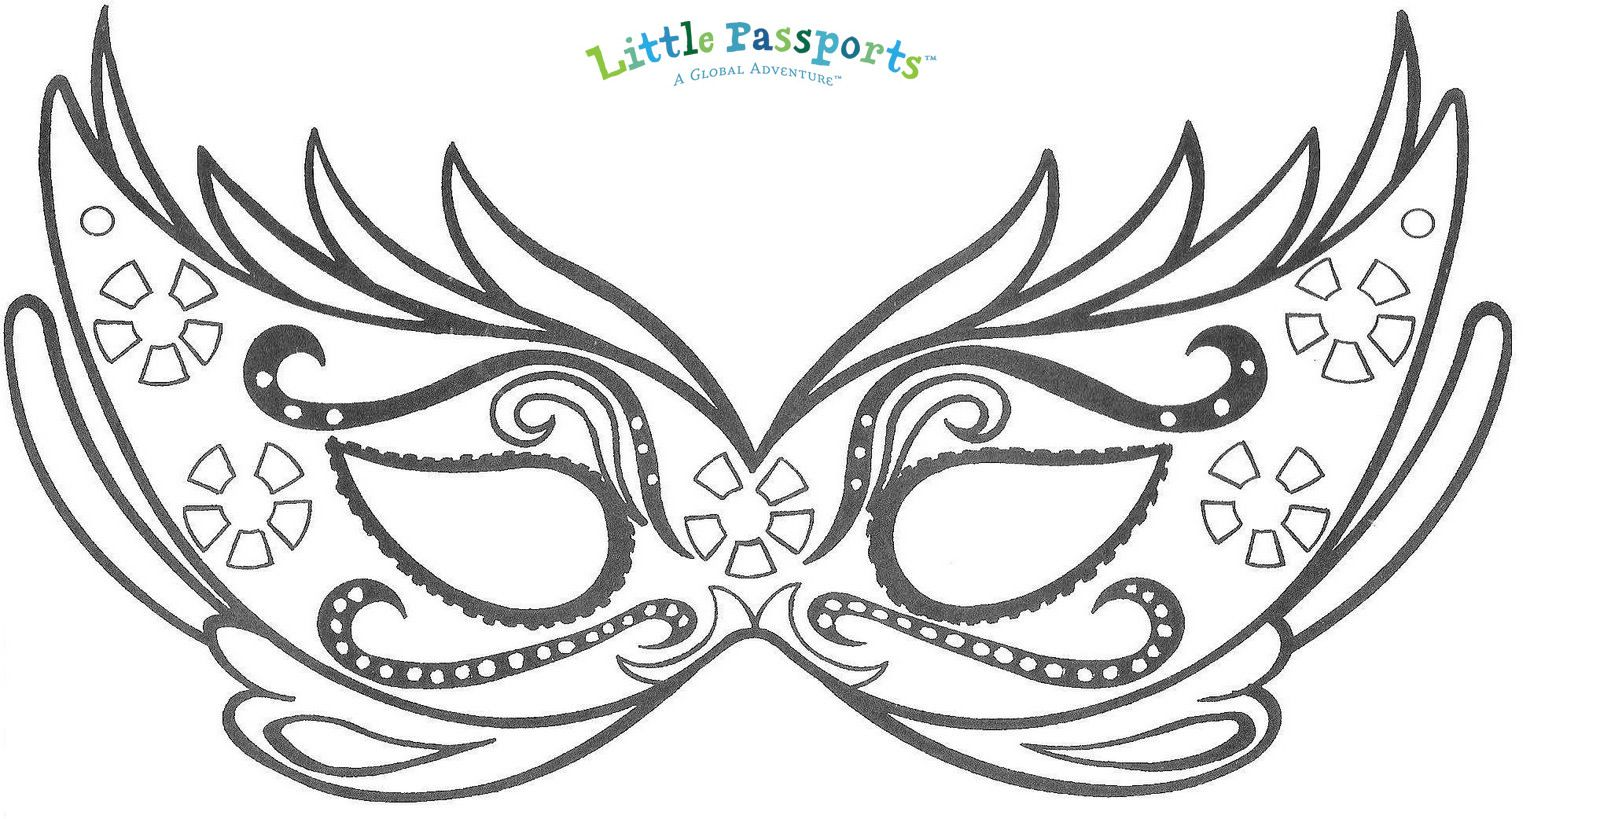 Kids costumes and masks for carnaval in brazil little passports kids costumes and masks for carnaval in brazil little passports pronofoot35fo Gallery